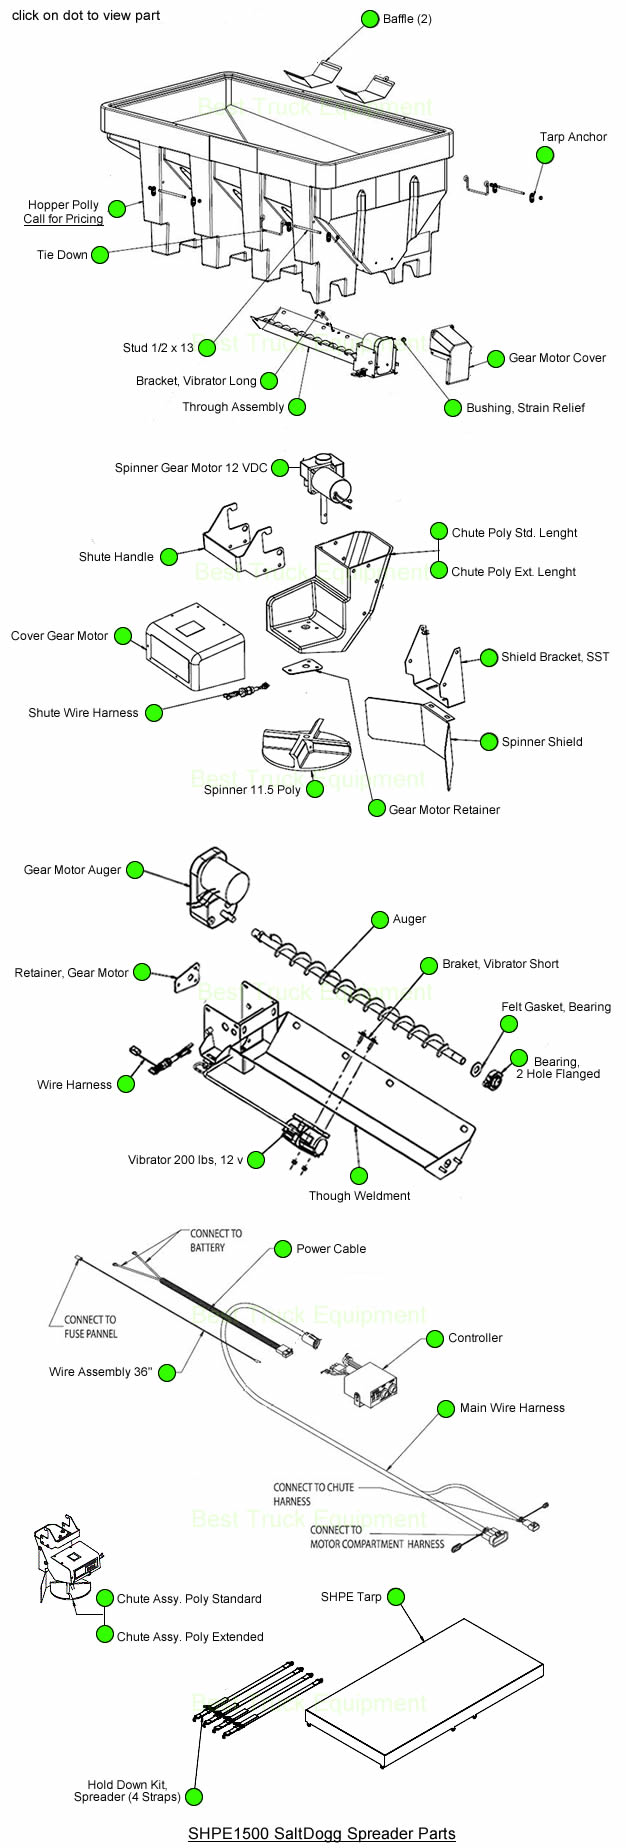 shpe2000 saltdogg shpe2000 buyers salt spreader parts by part look up diagram saltdogg salt spreader wire harness at alyssarenee.co